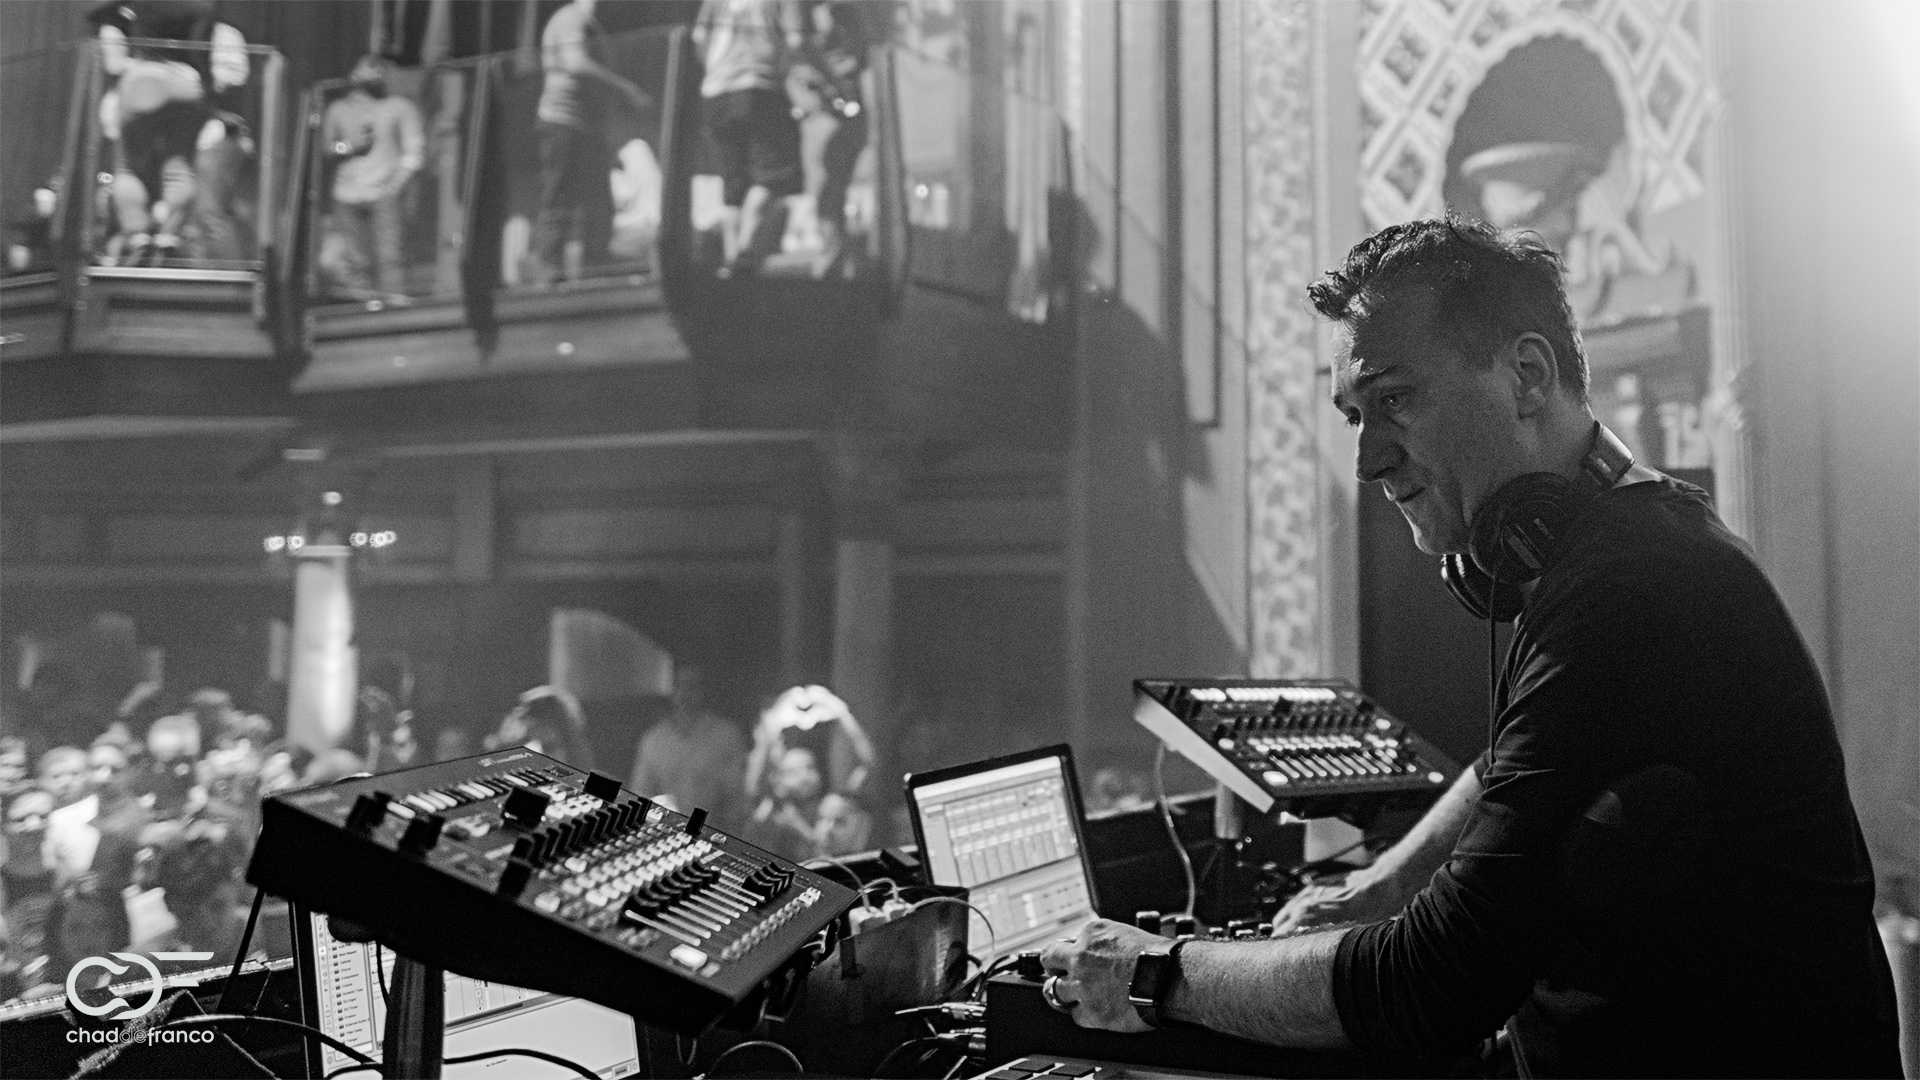 Paul van Dyk concentrates on the mix at Opera Nightclub